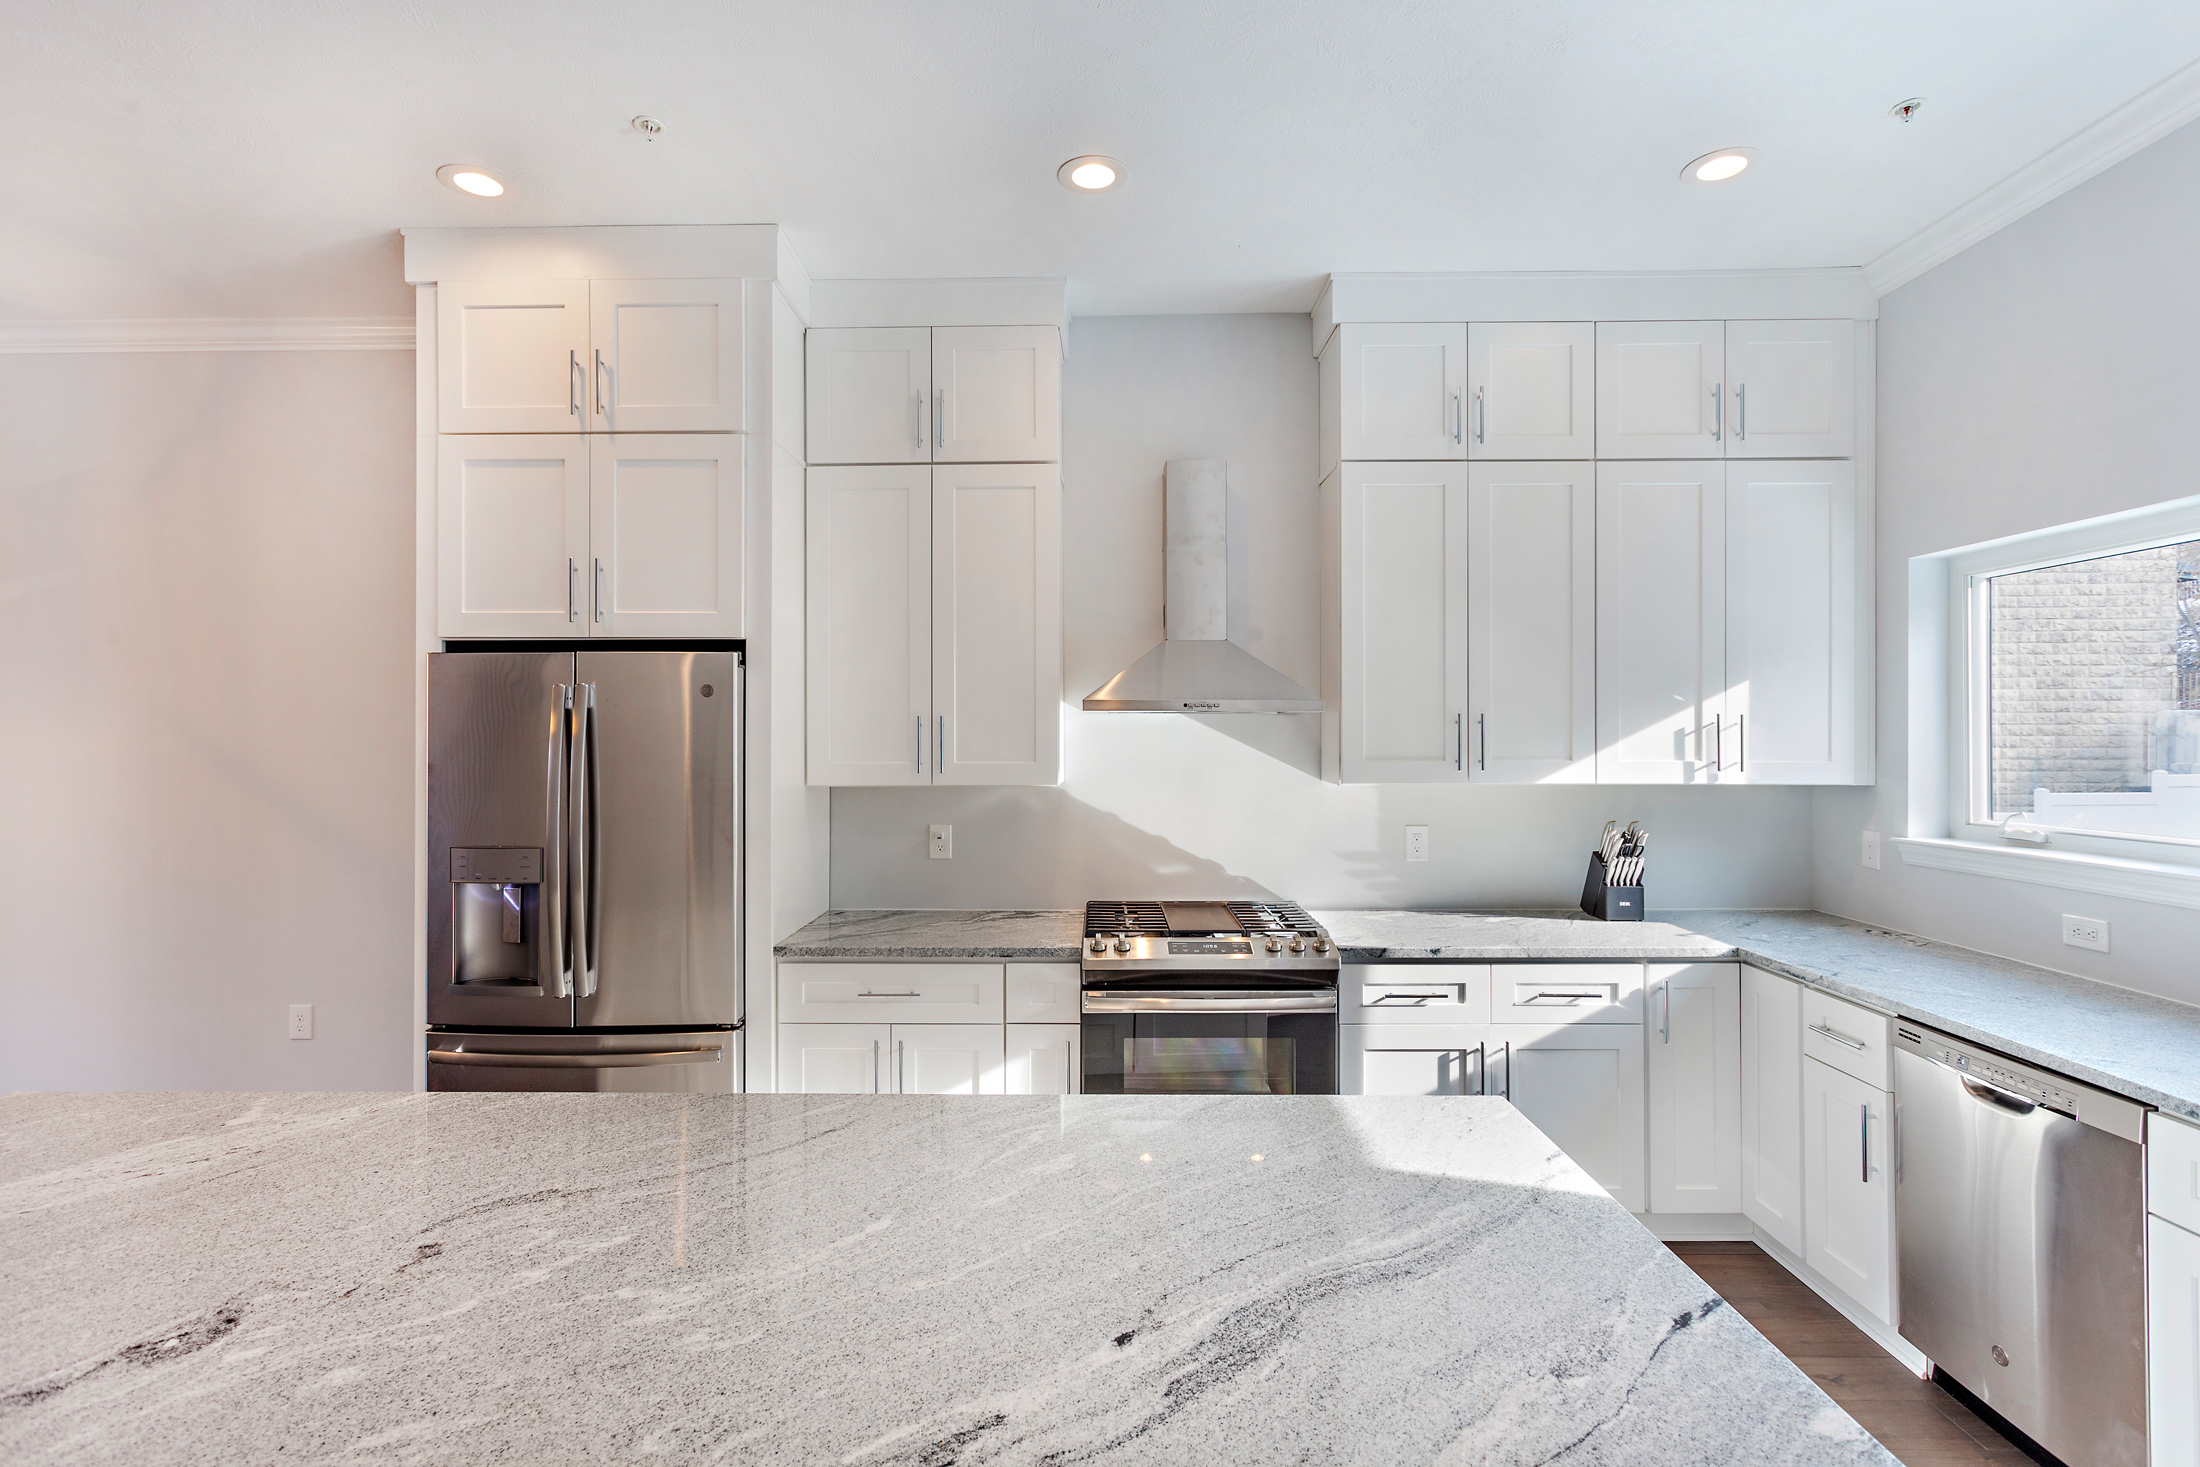 Lawrenceville Townhomes - 4 Story Townhomes - Over 2,500 sqft. 3 bedrooms, 3.5 bathrooms, 2-car garage